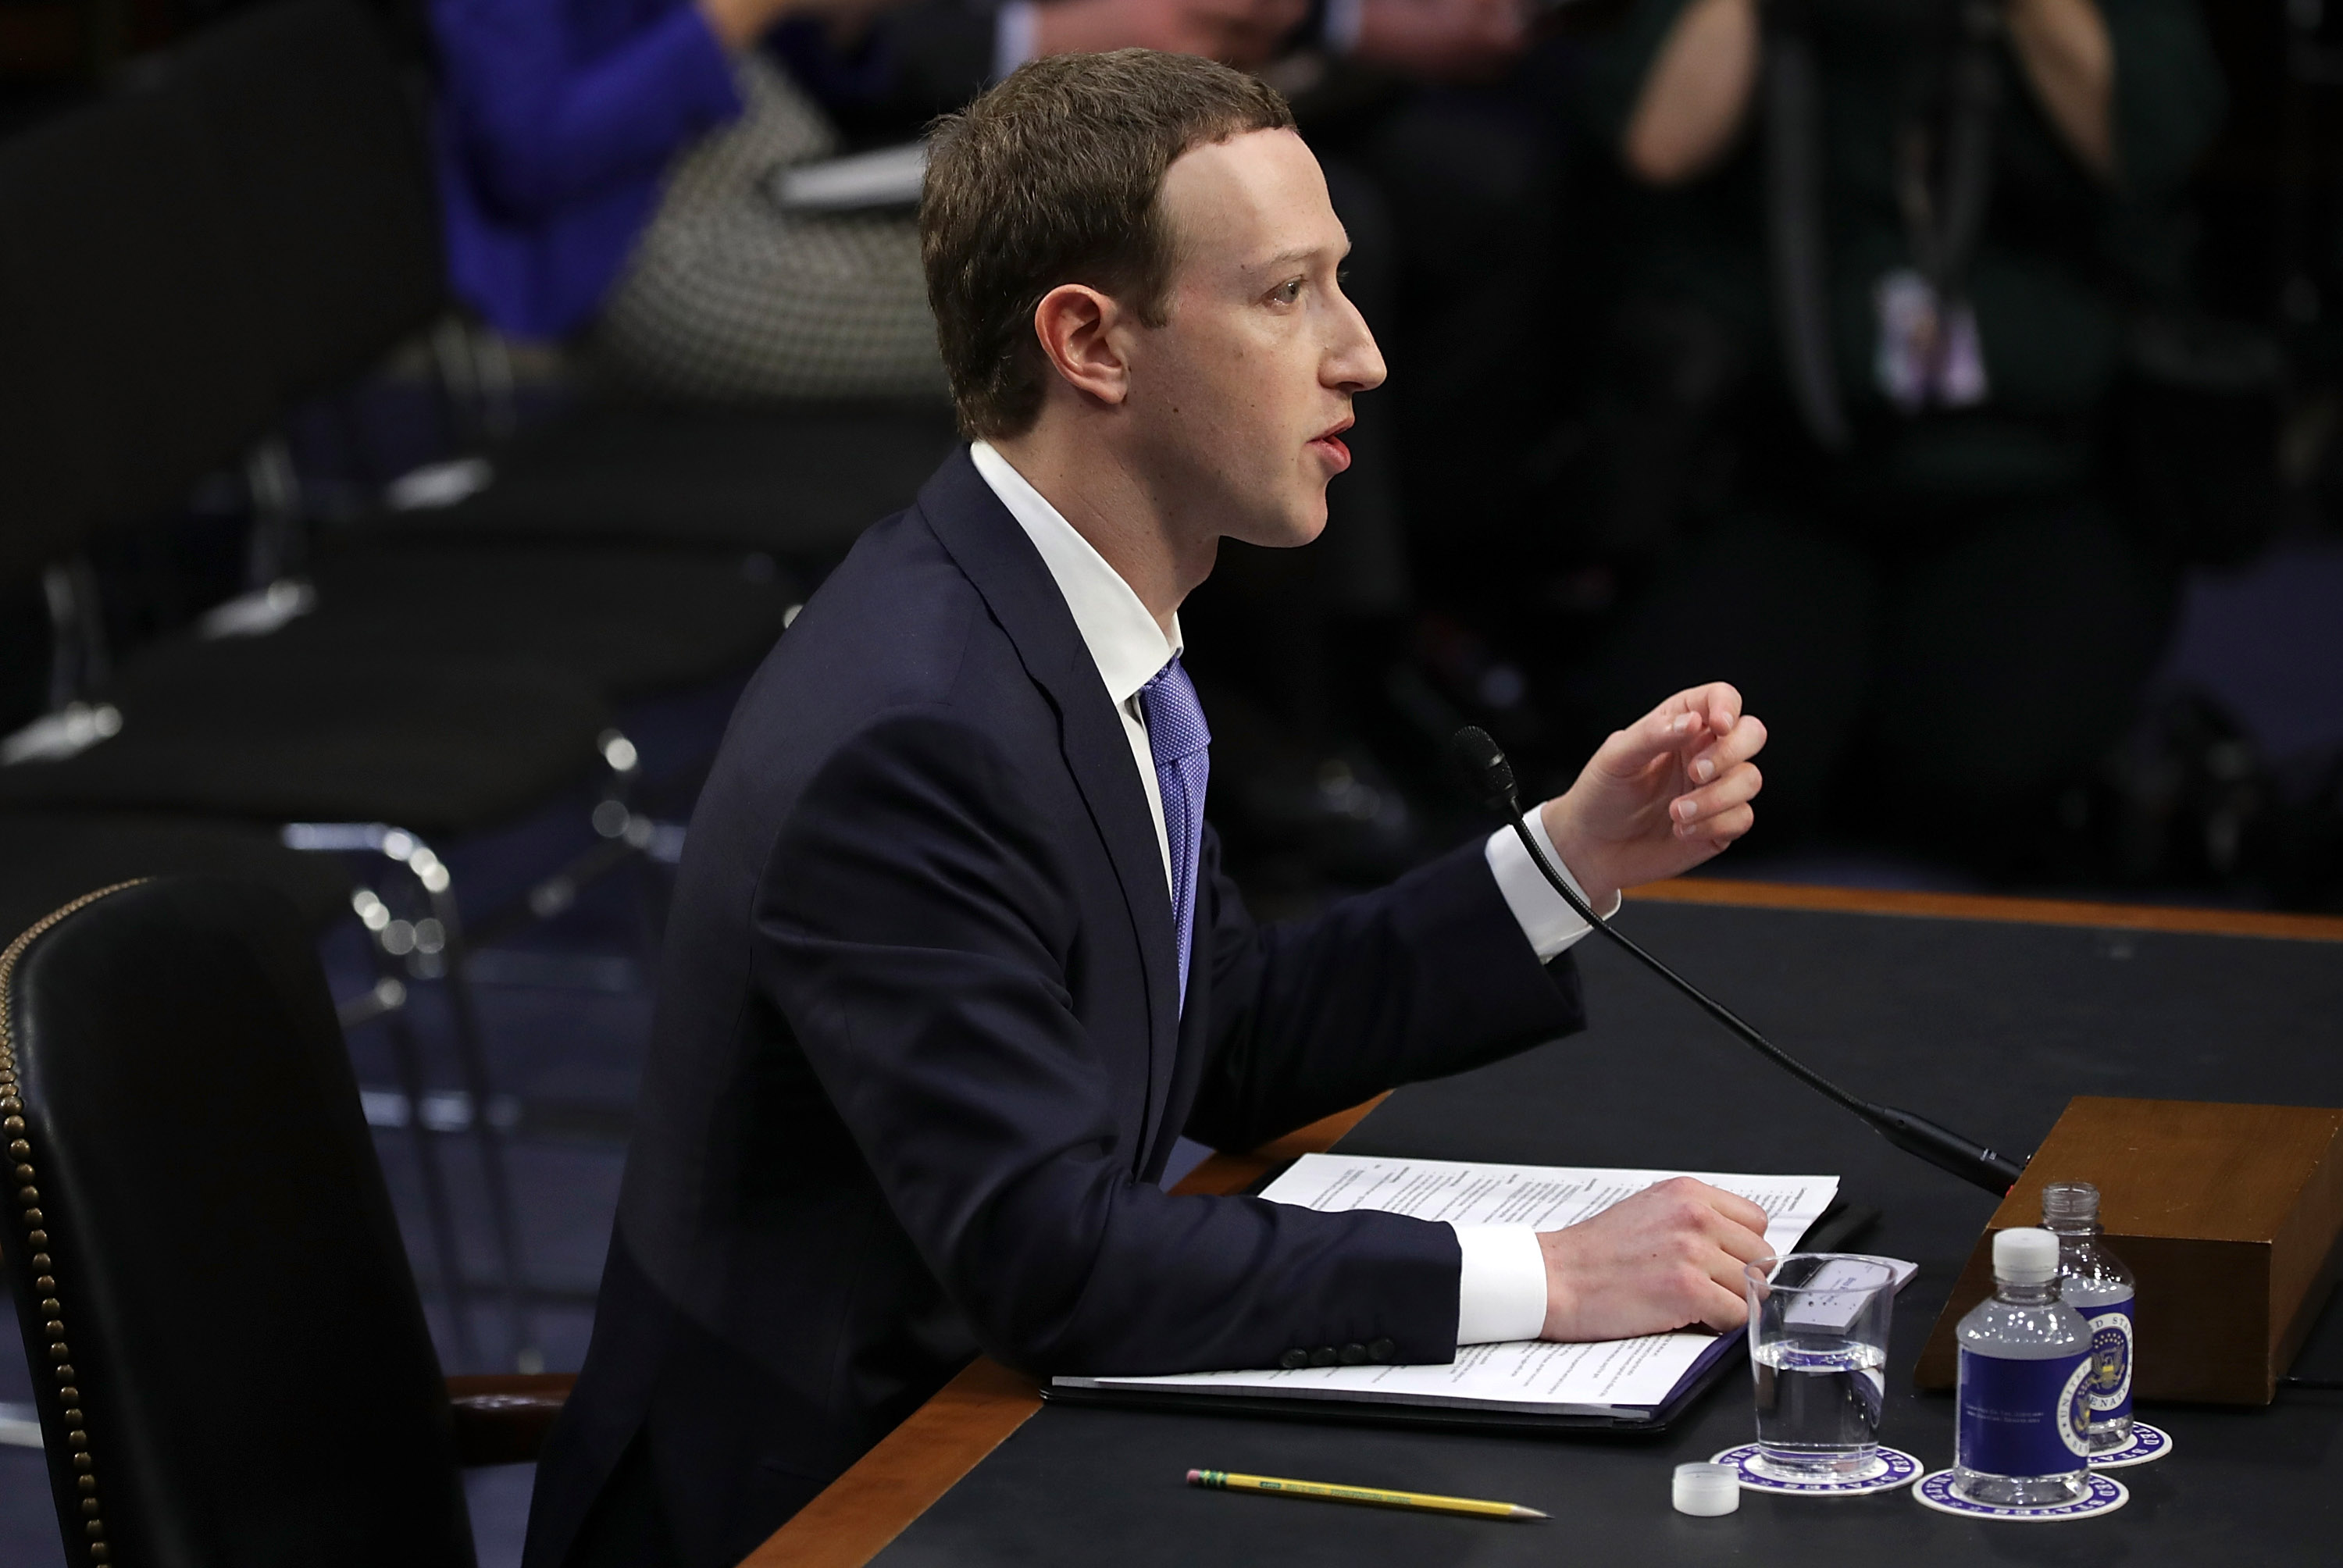 Sen. Harris puts Zuckerberg between a rock and a hard place for not disclosing data misuse